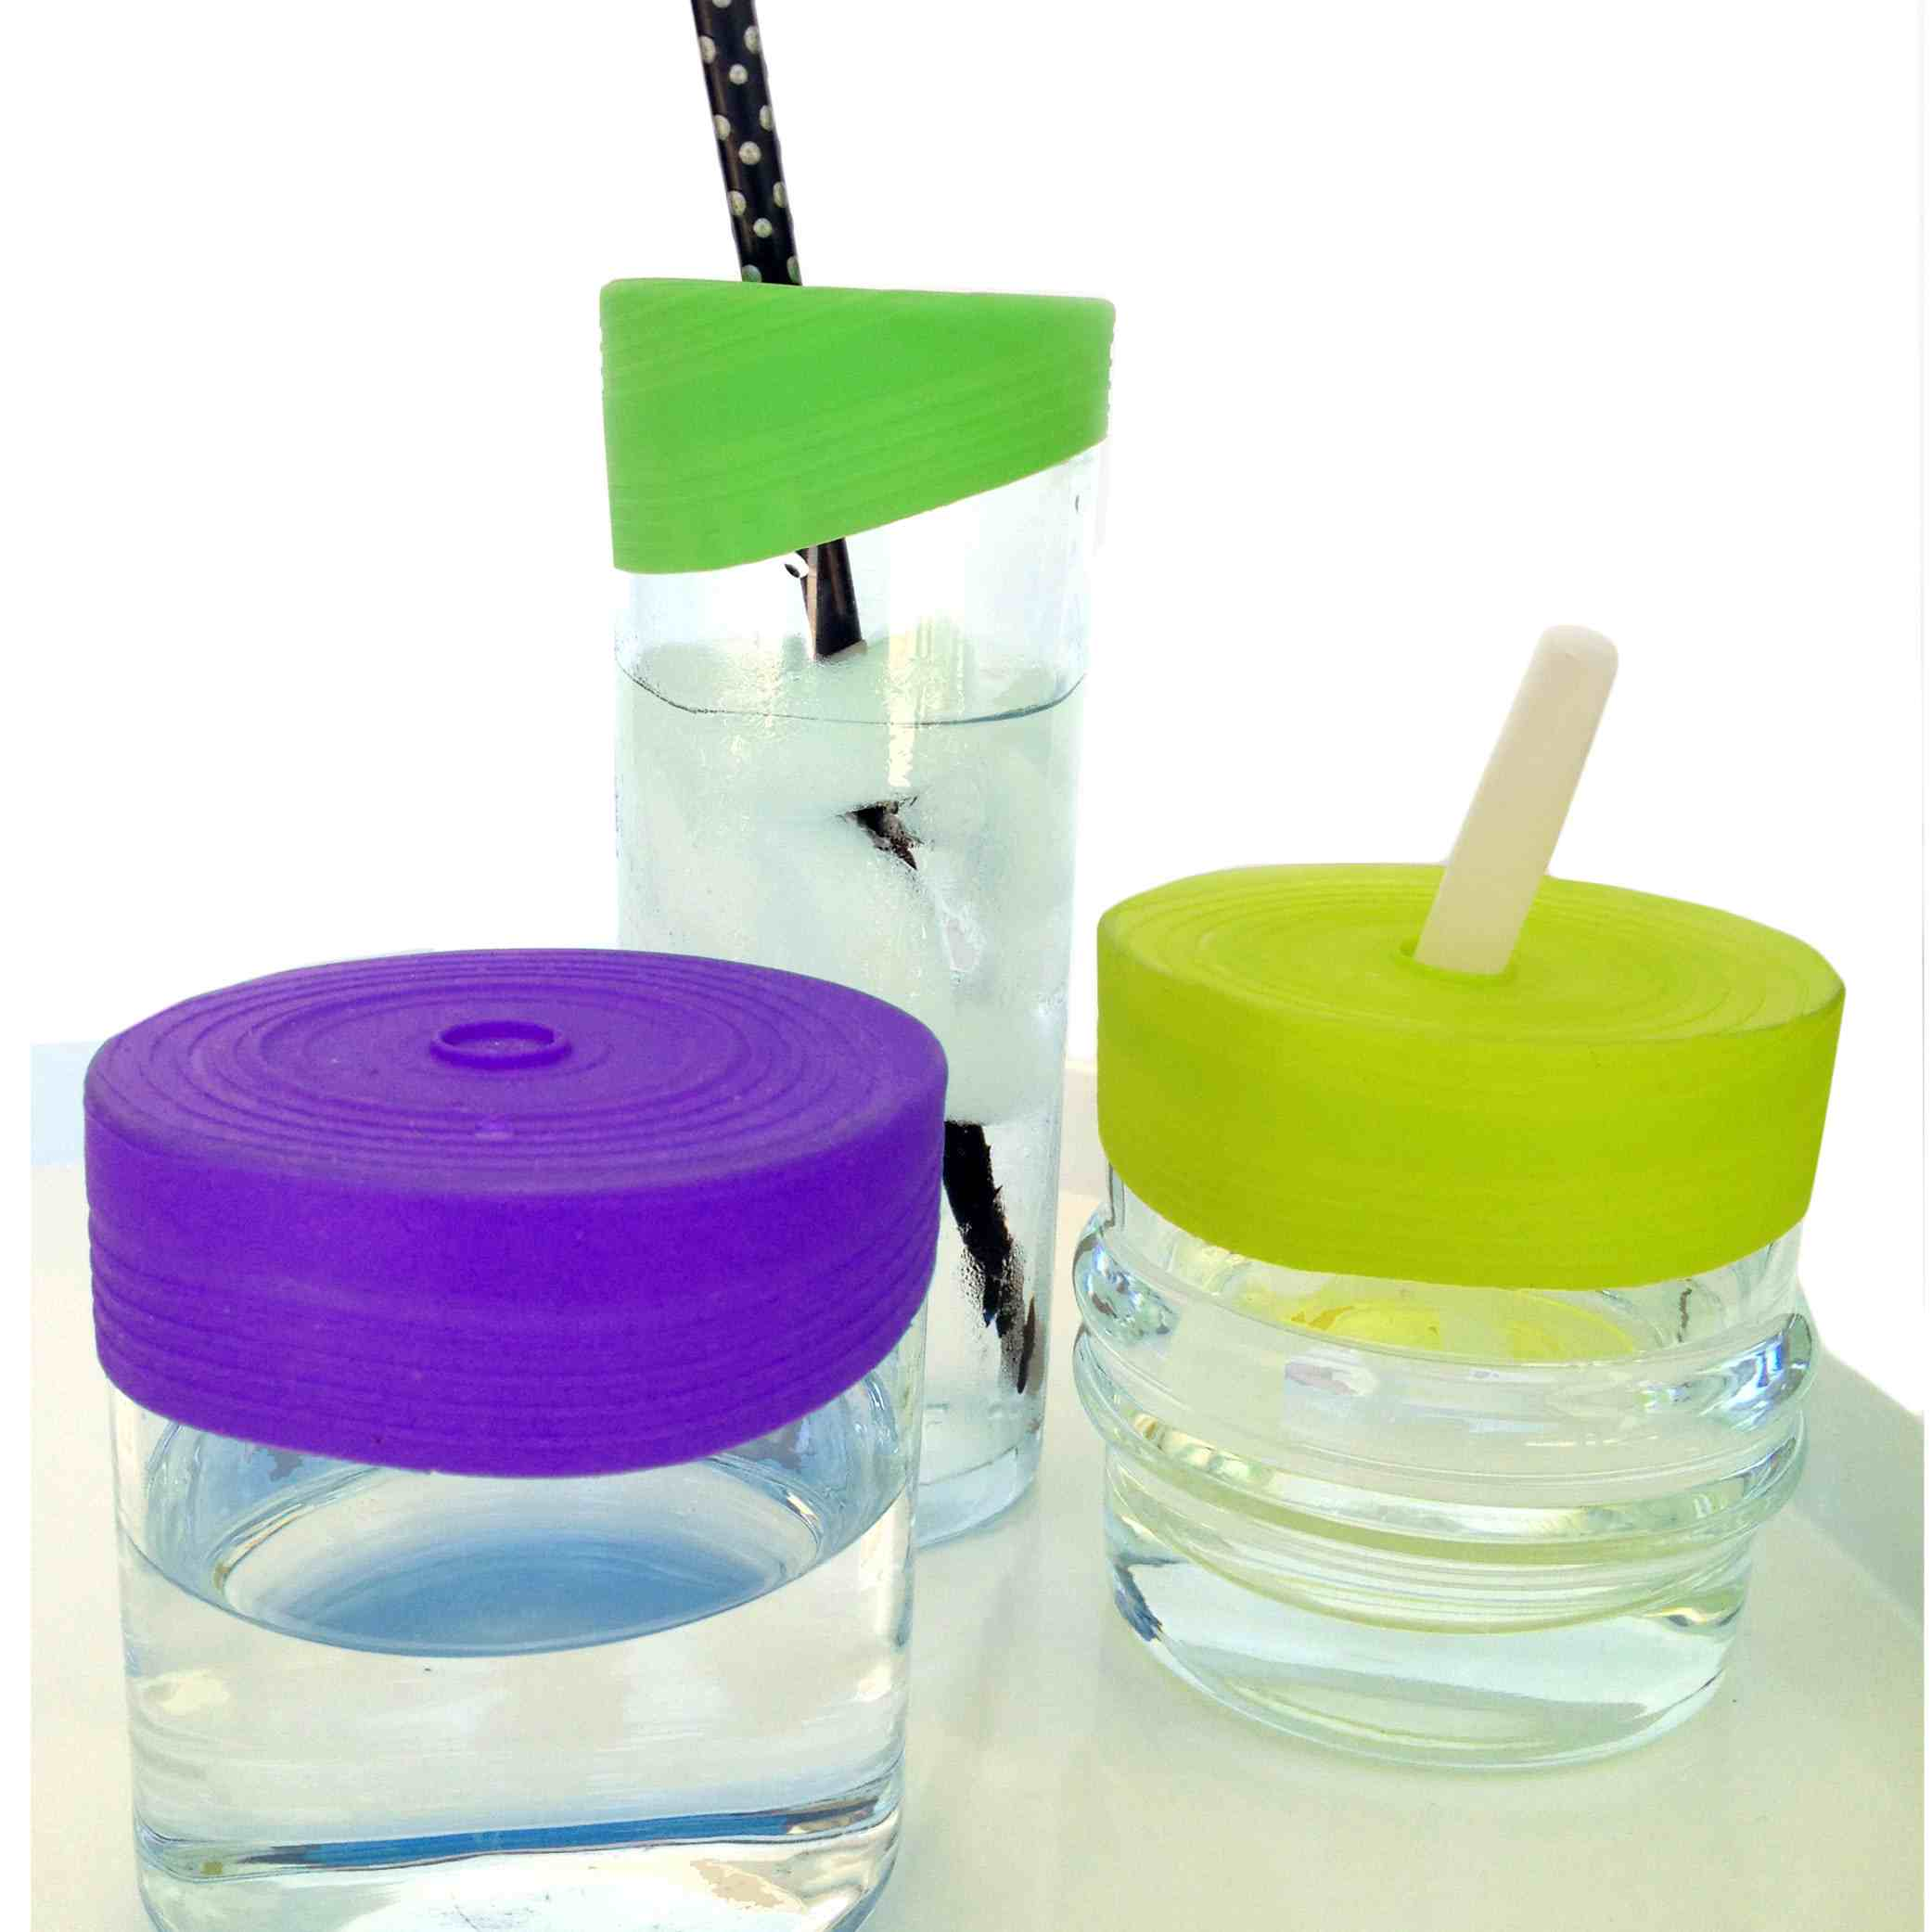 Silikids Siliskin Reusable Silicone Straw Tops - 3 Pack